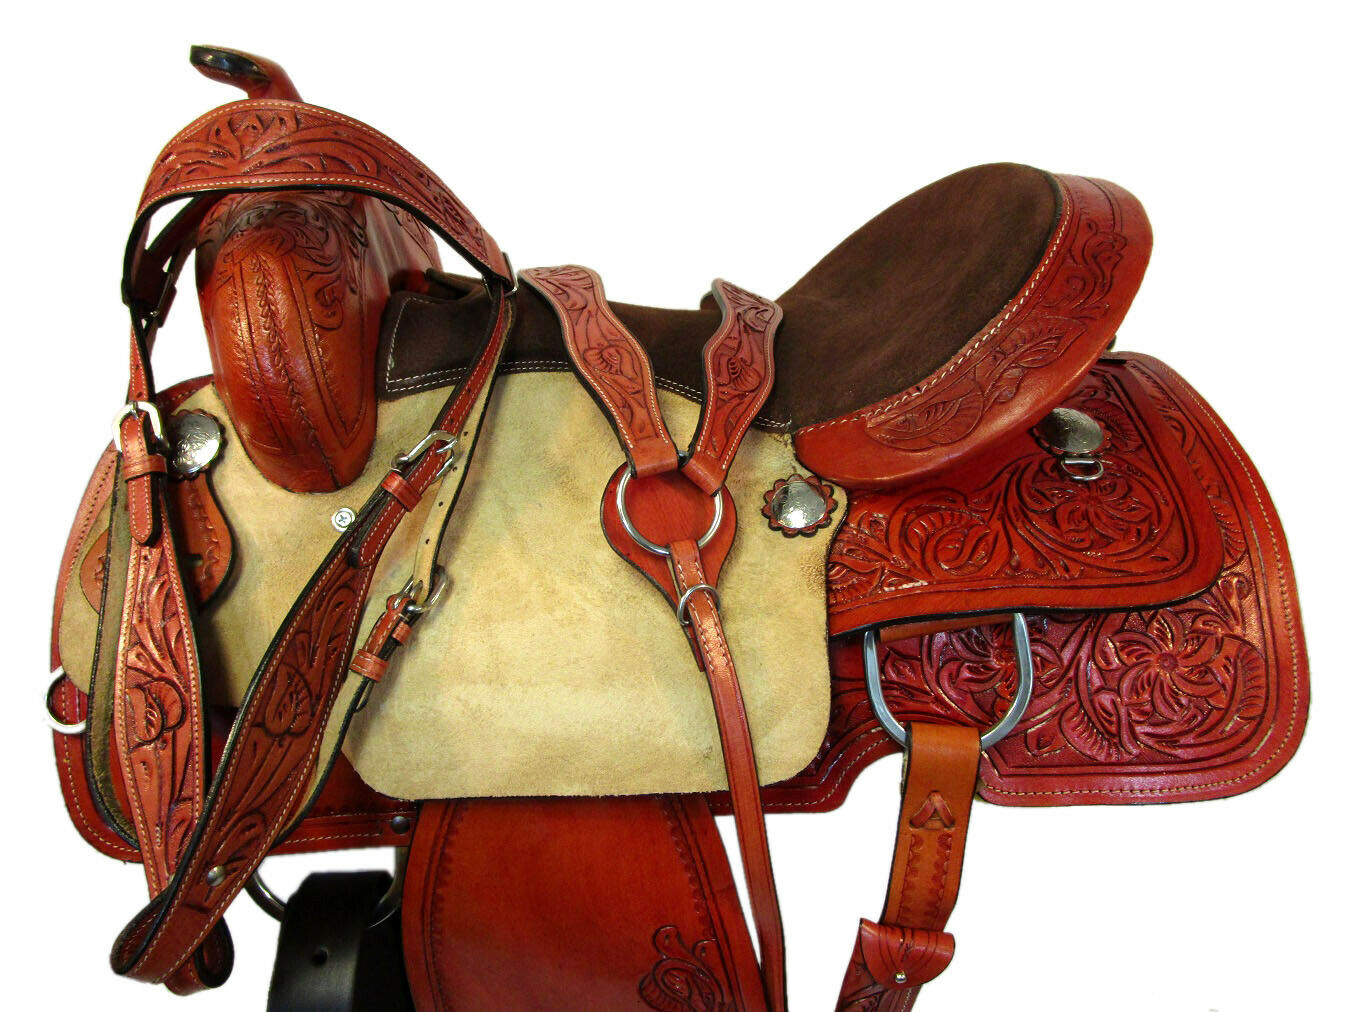 PRO WESTERN barrel RACING HORSE SADDLE 15 16 piacere Racer strumentoED IN PELLE Tack